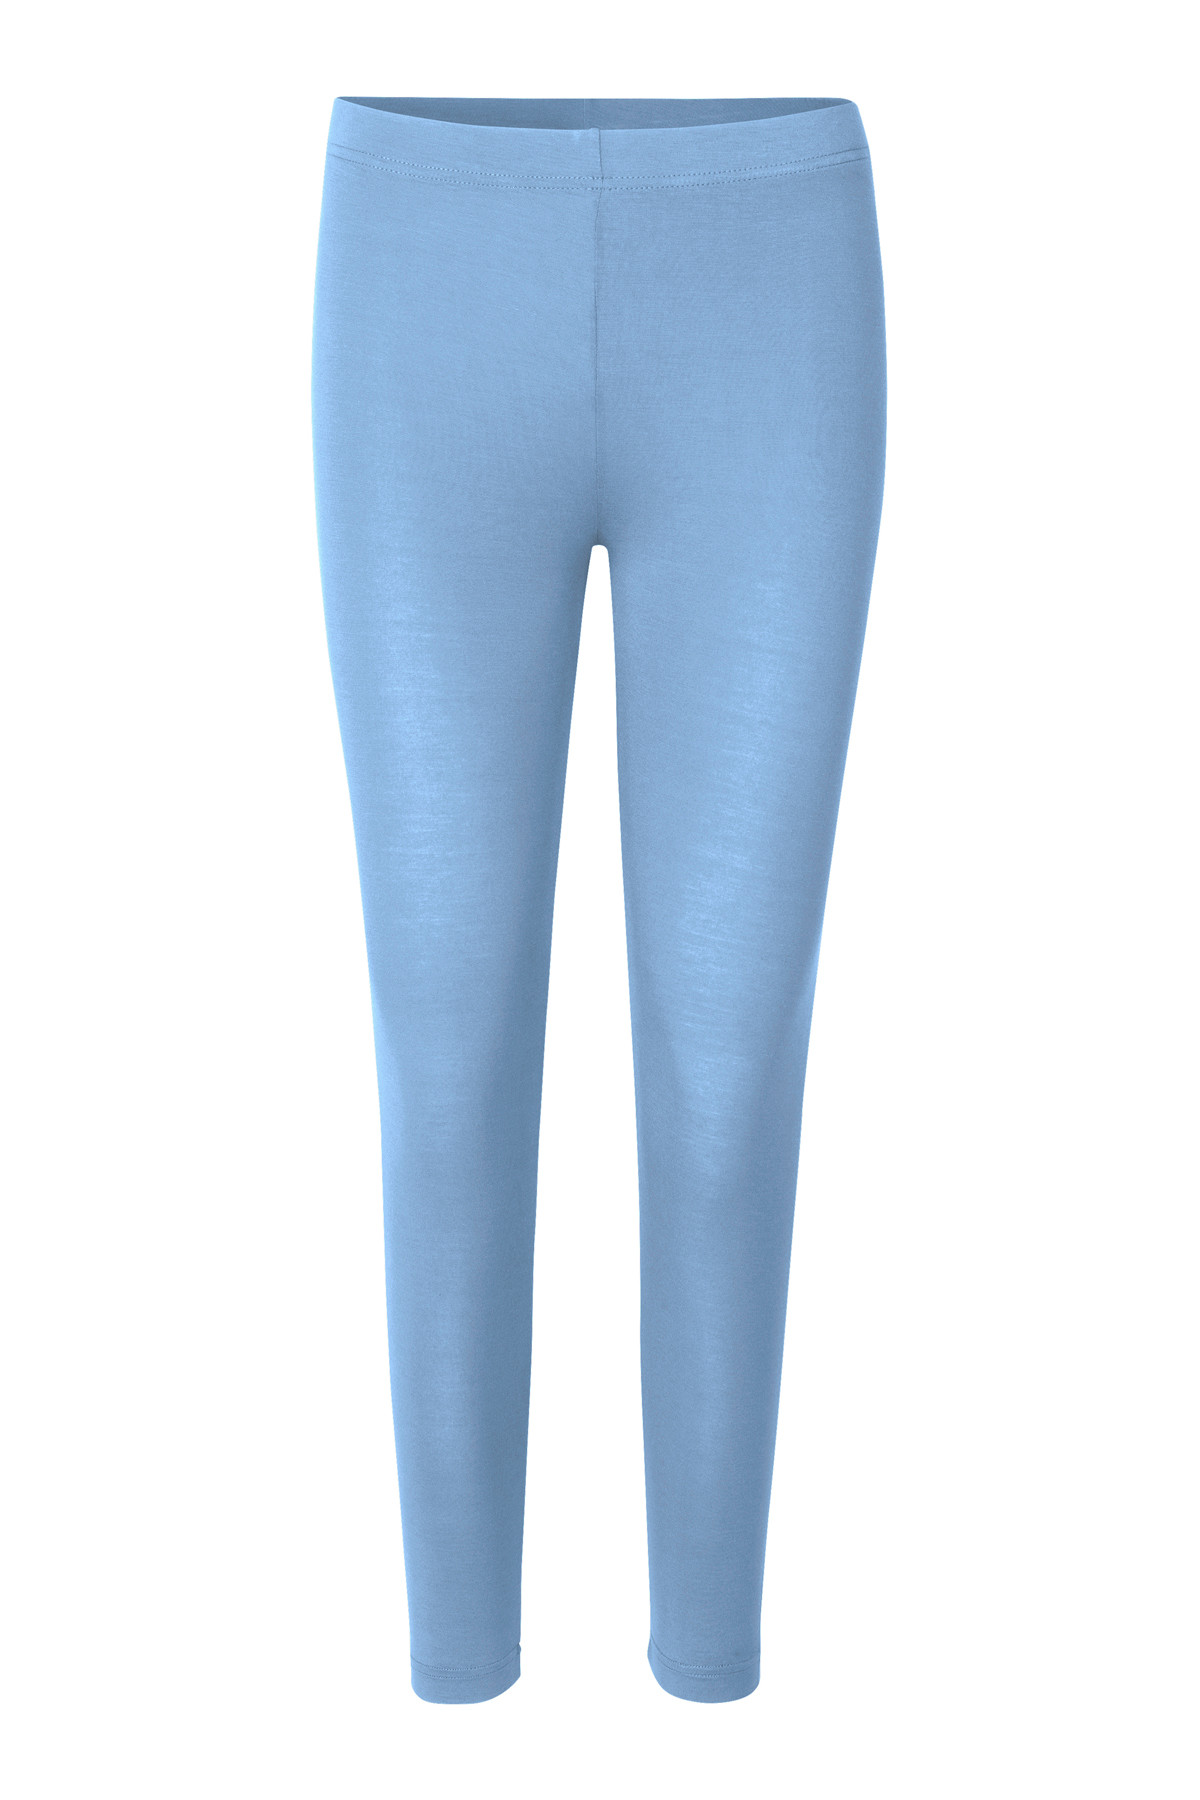 NOA NOA LEGGINGS 1-0469-16 00936 (Blue, XXS)